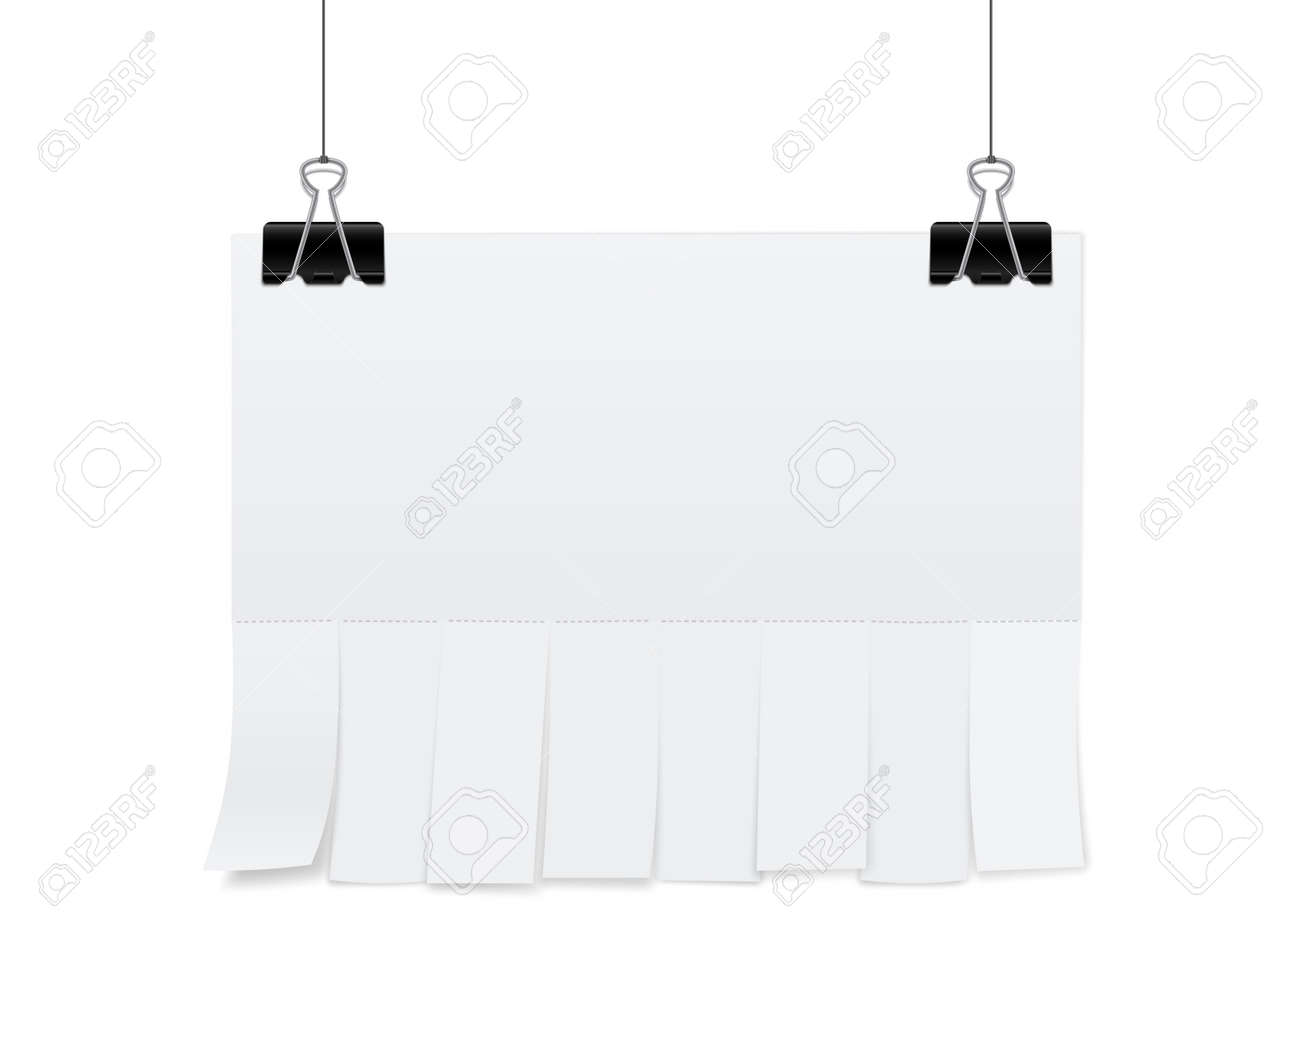 Creative illustration of empty blank sheet paper advertising with tear-off cut slips isolated on background. Street art design copy space template. Abstract concept graphic element. - 120957551